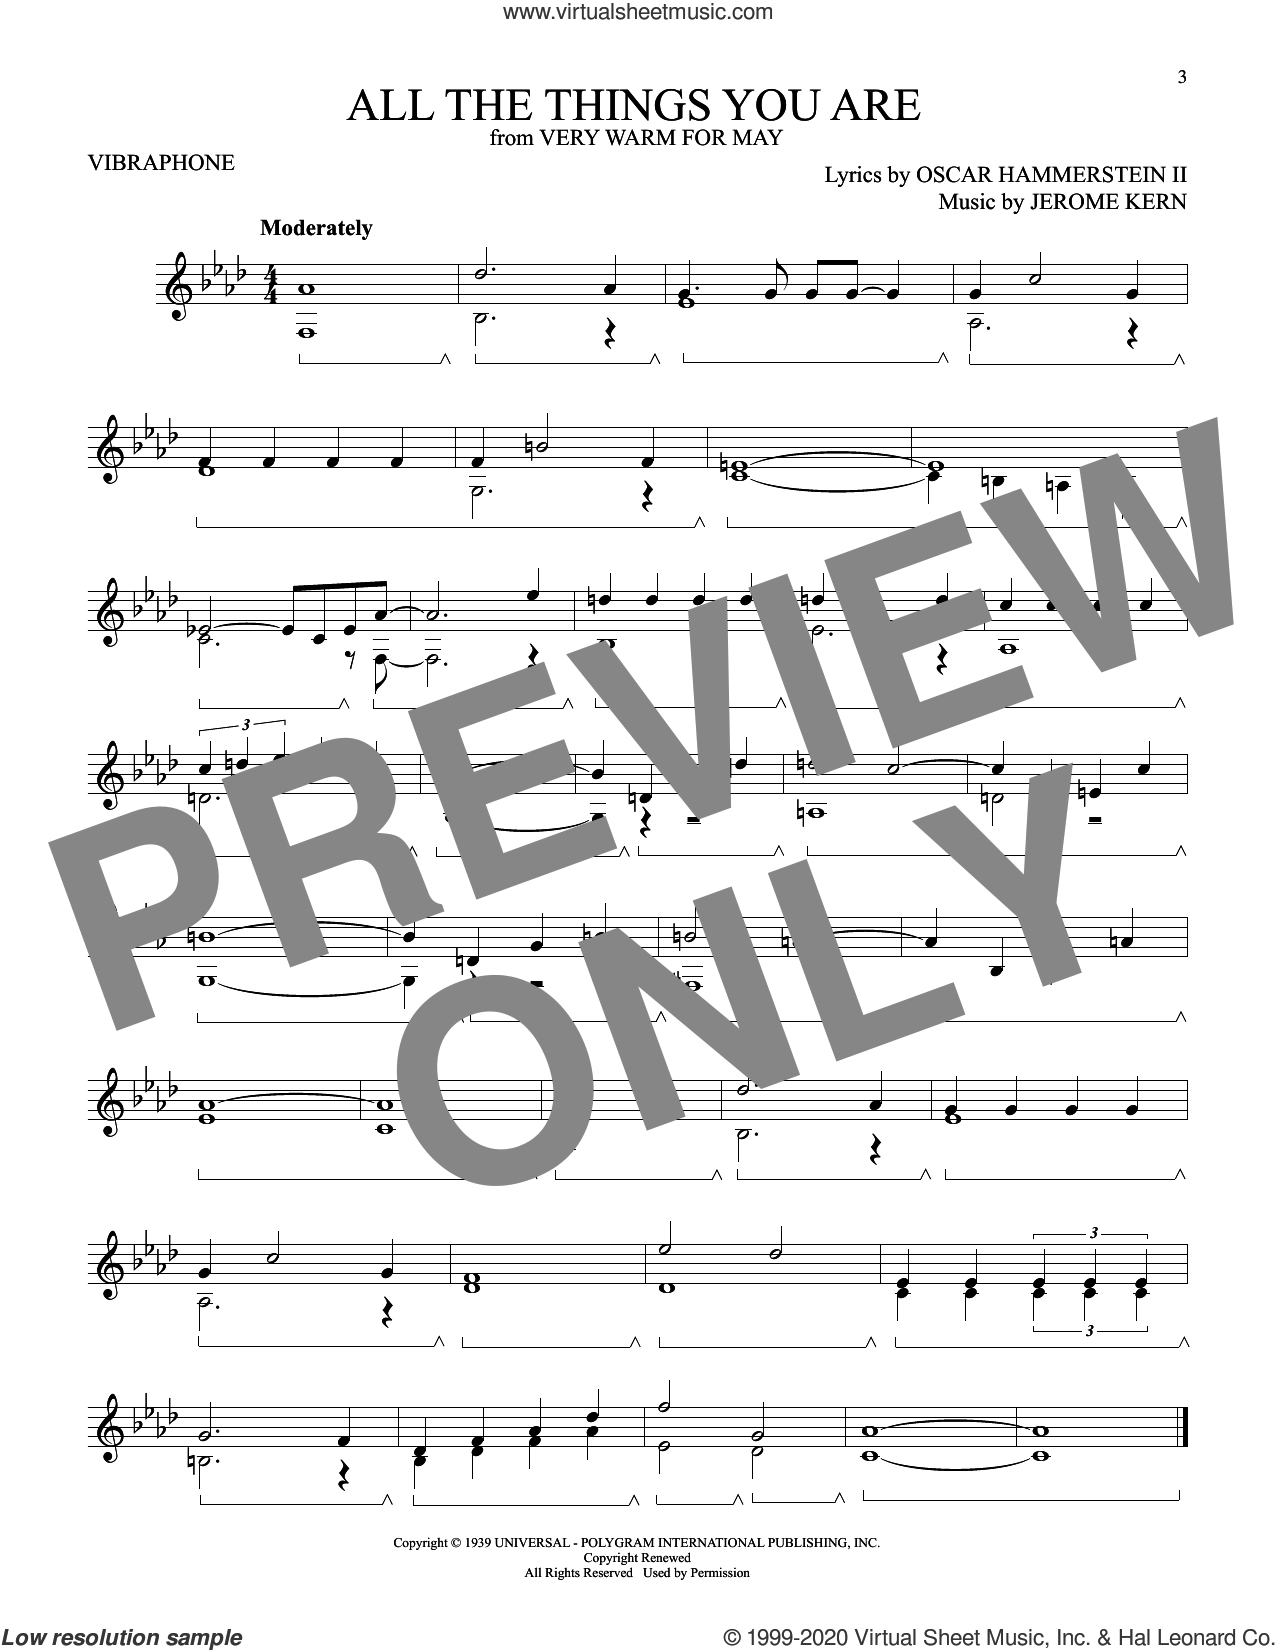 All The Things You Are (from Very Warm For May) sheet music for Vibraphone Solo by Oscar II Hammerstein, Jerome Kern and Oscar Hammerstein II & Jerome Kern, intermediate skill level